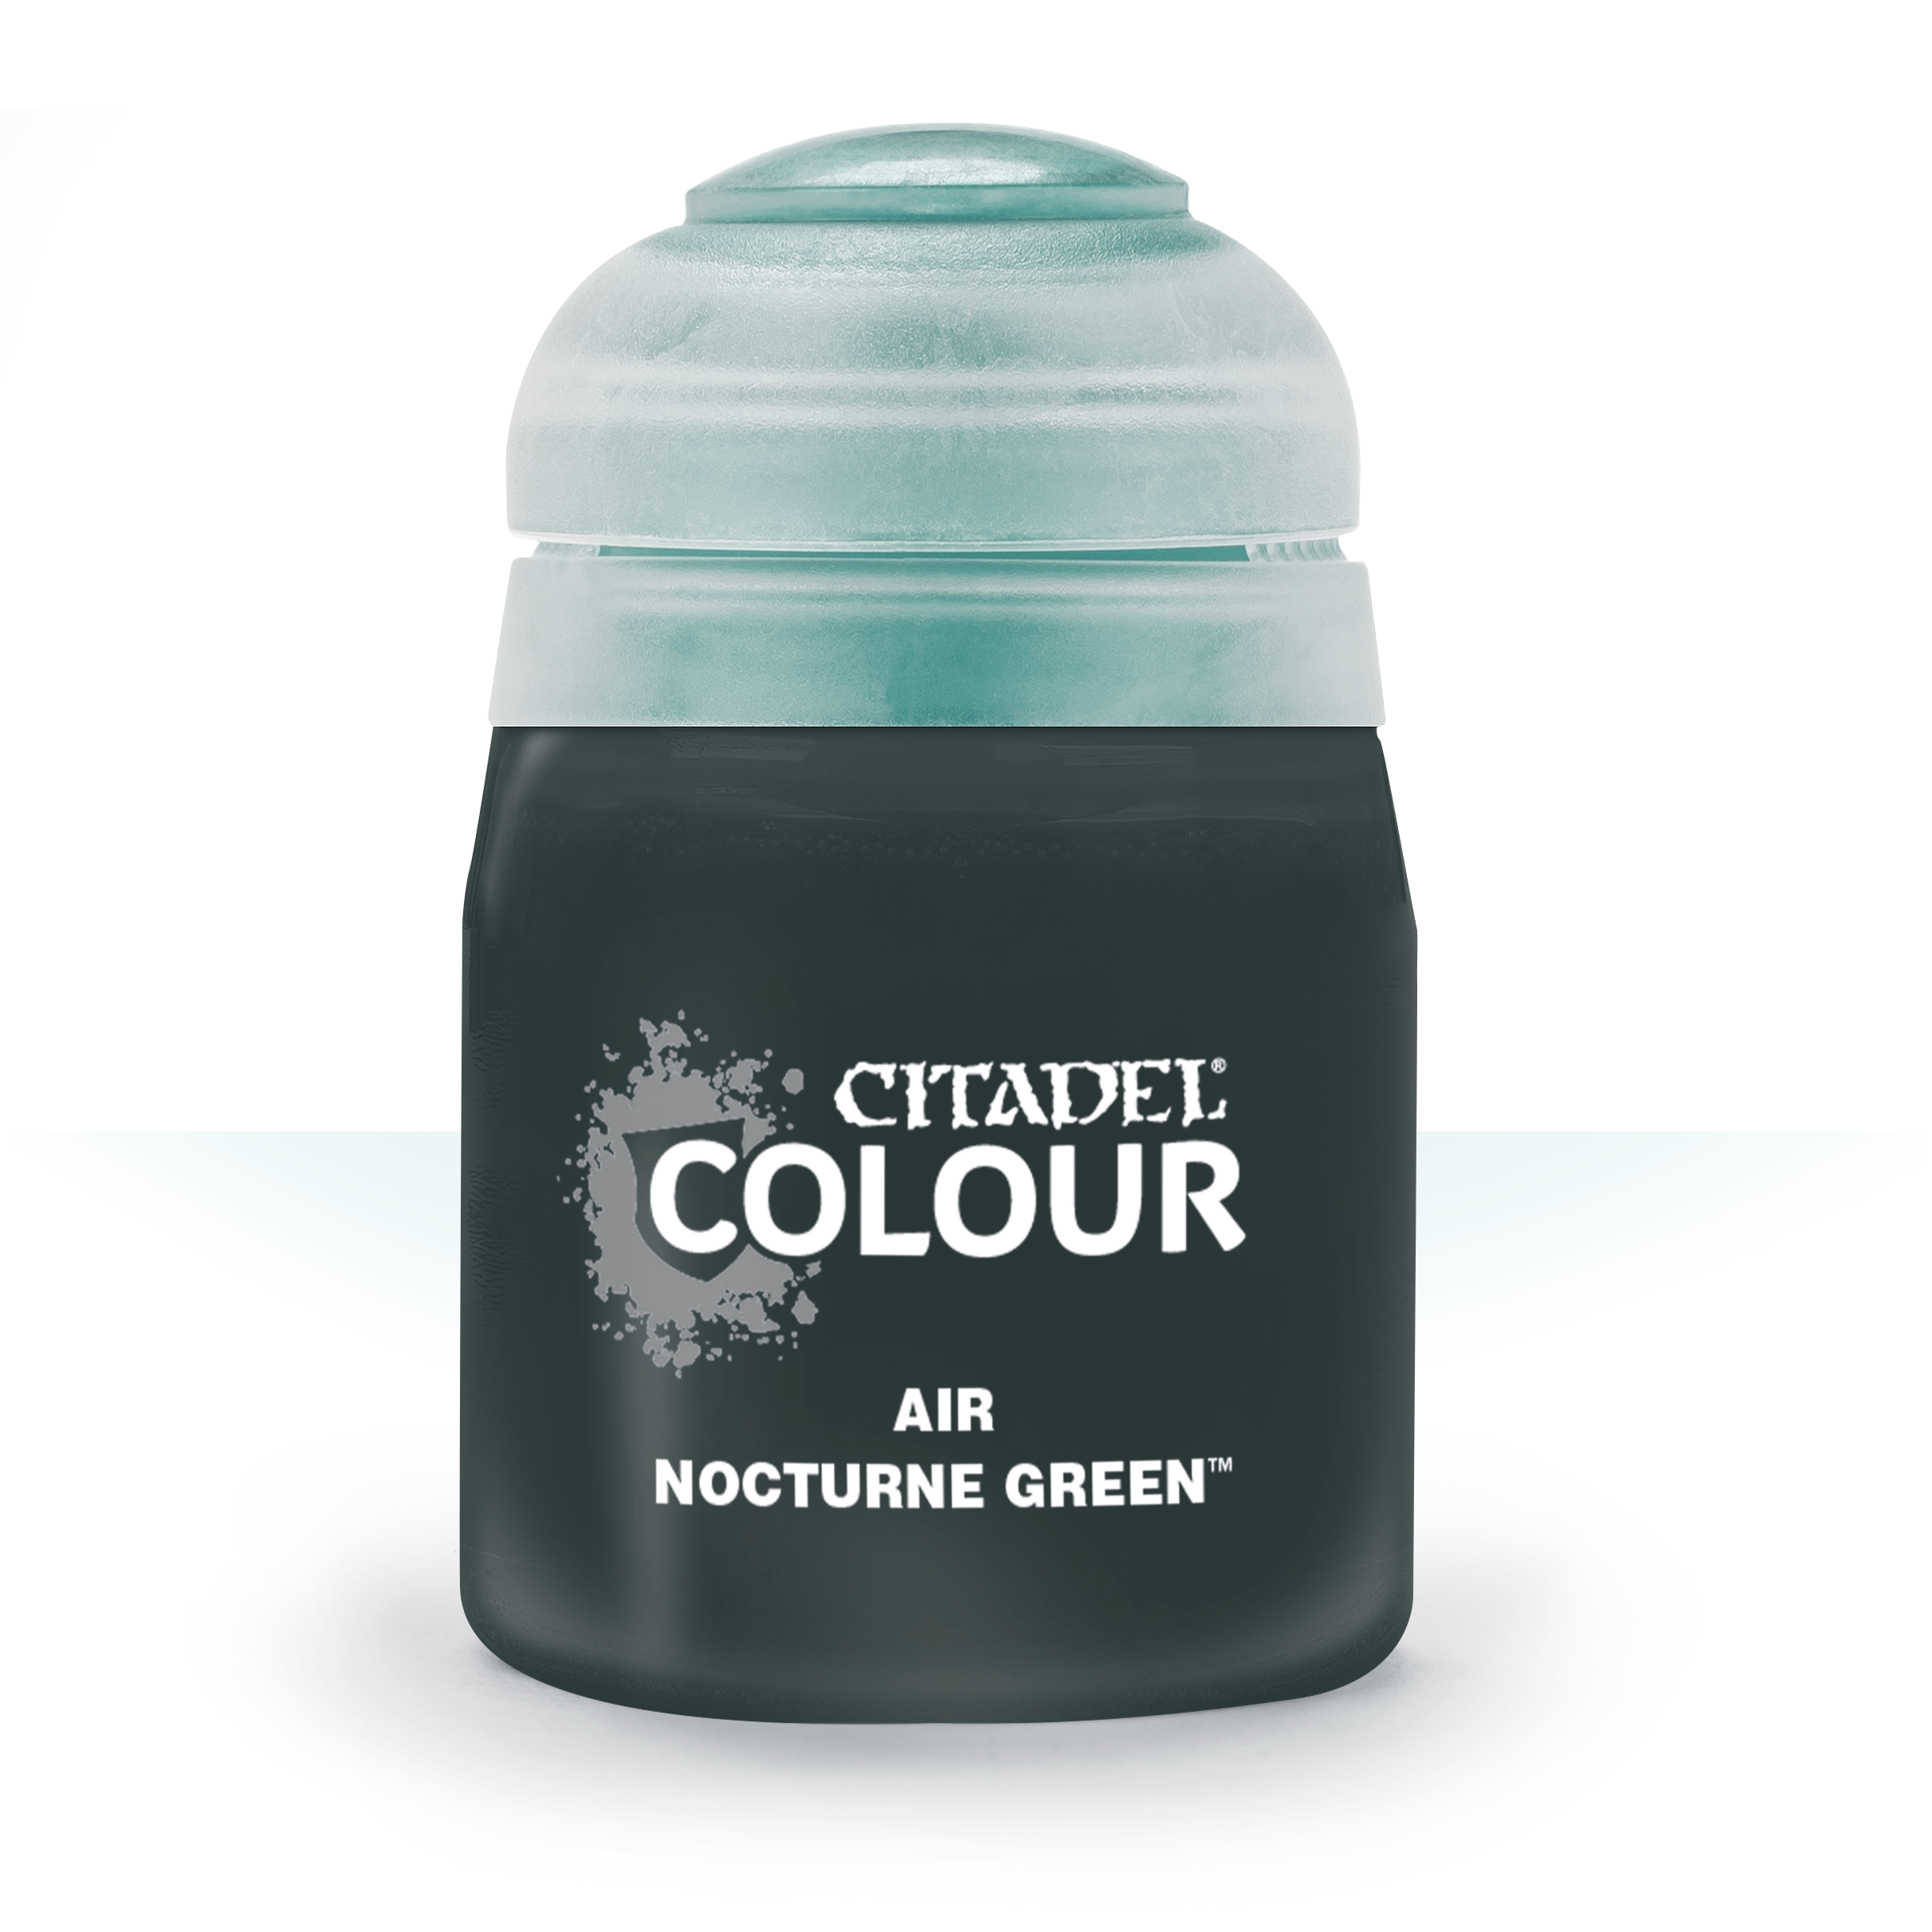 Citadel Airbrush Paints (Air 24ml) | Mythicos